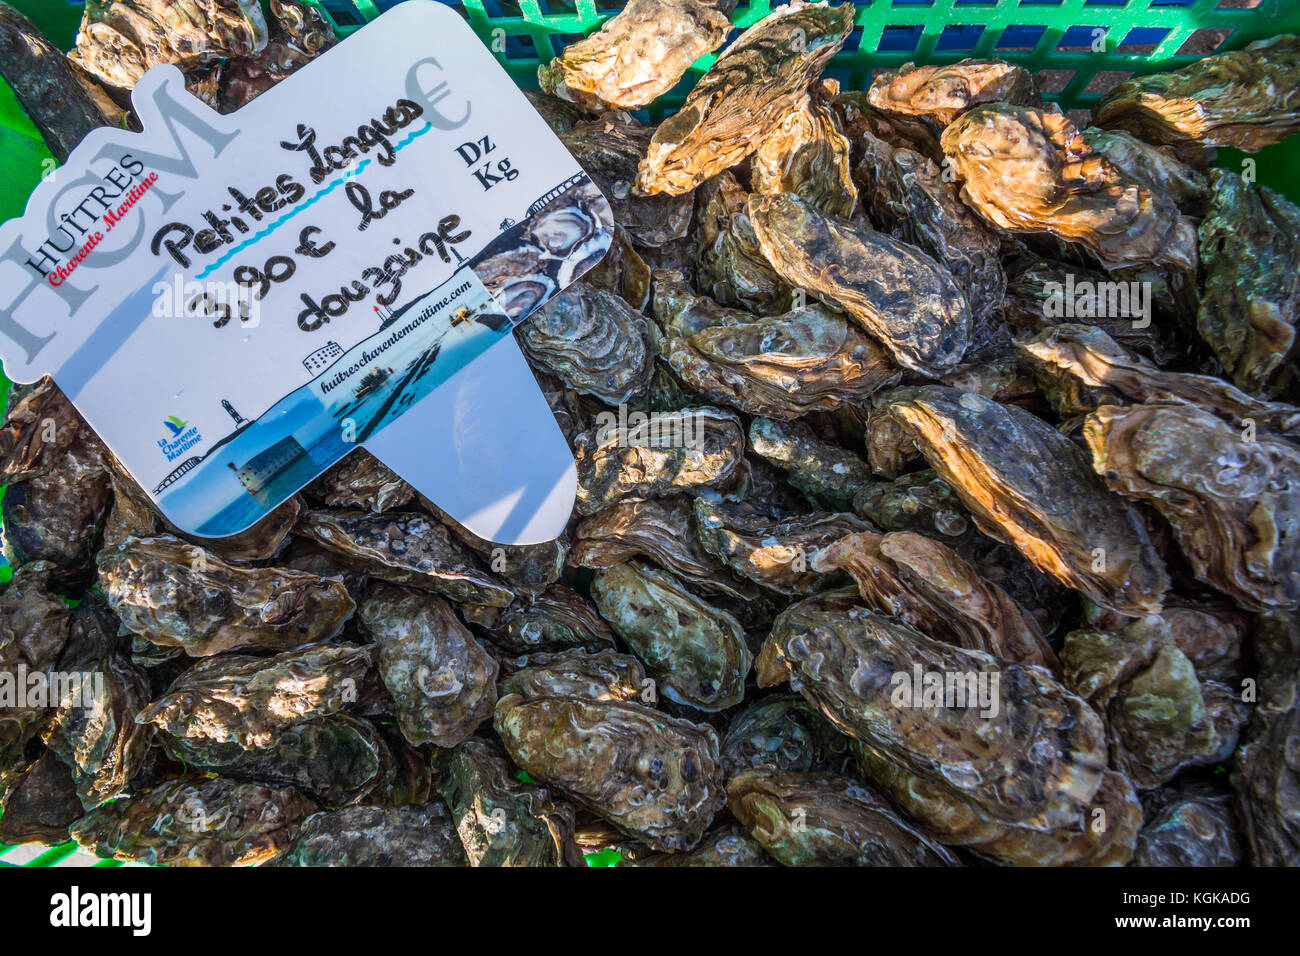 Atlantic oysters for sale in market - France. - Stock Image